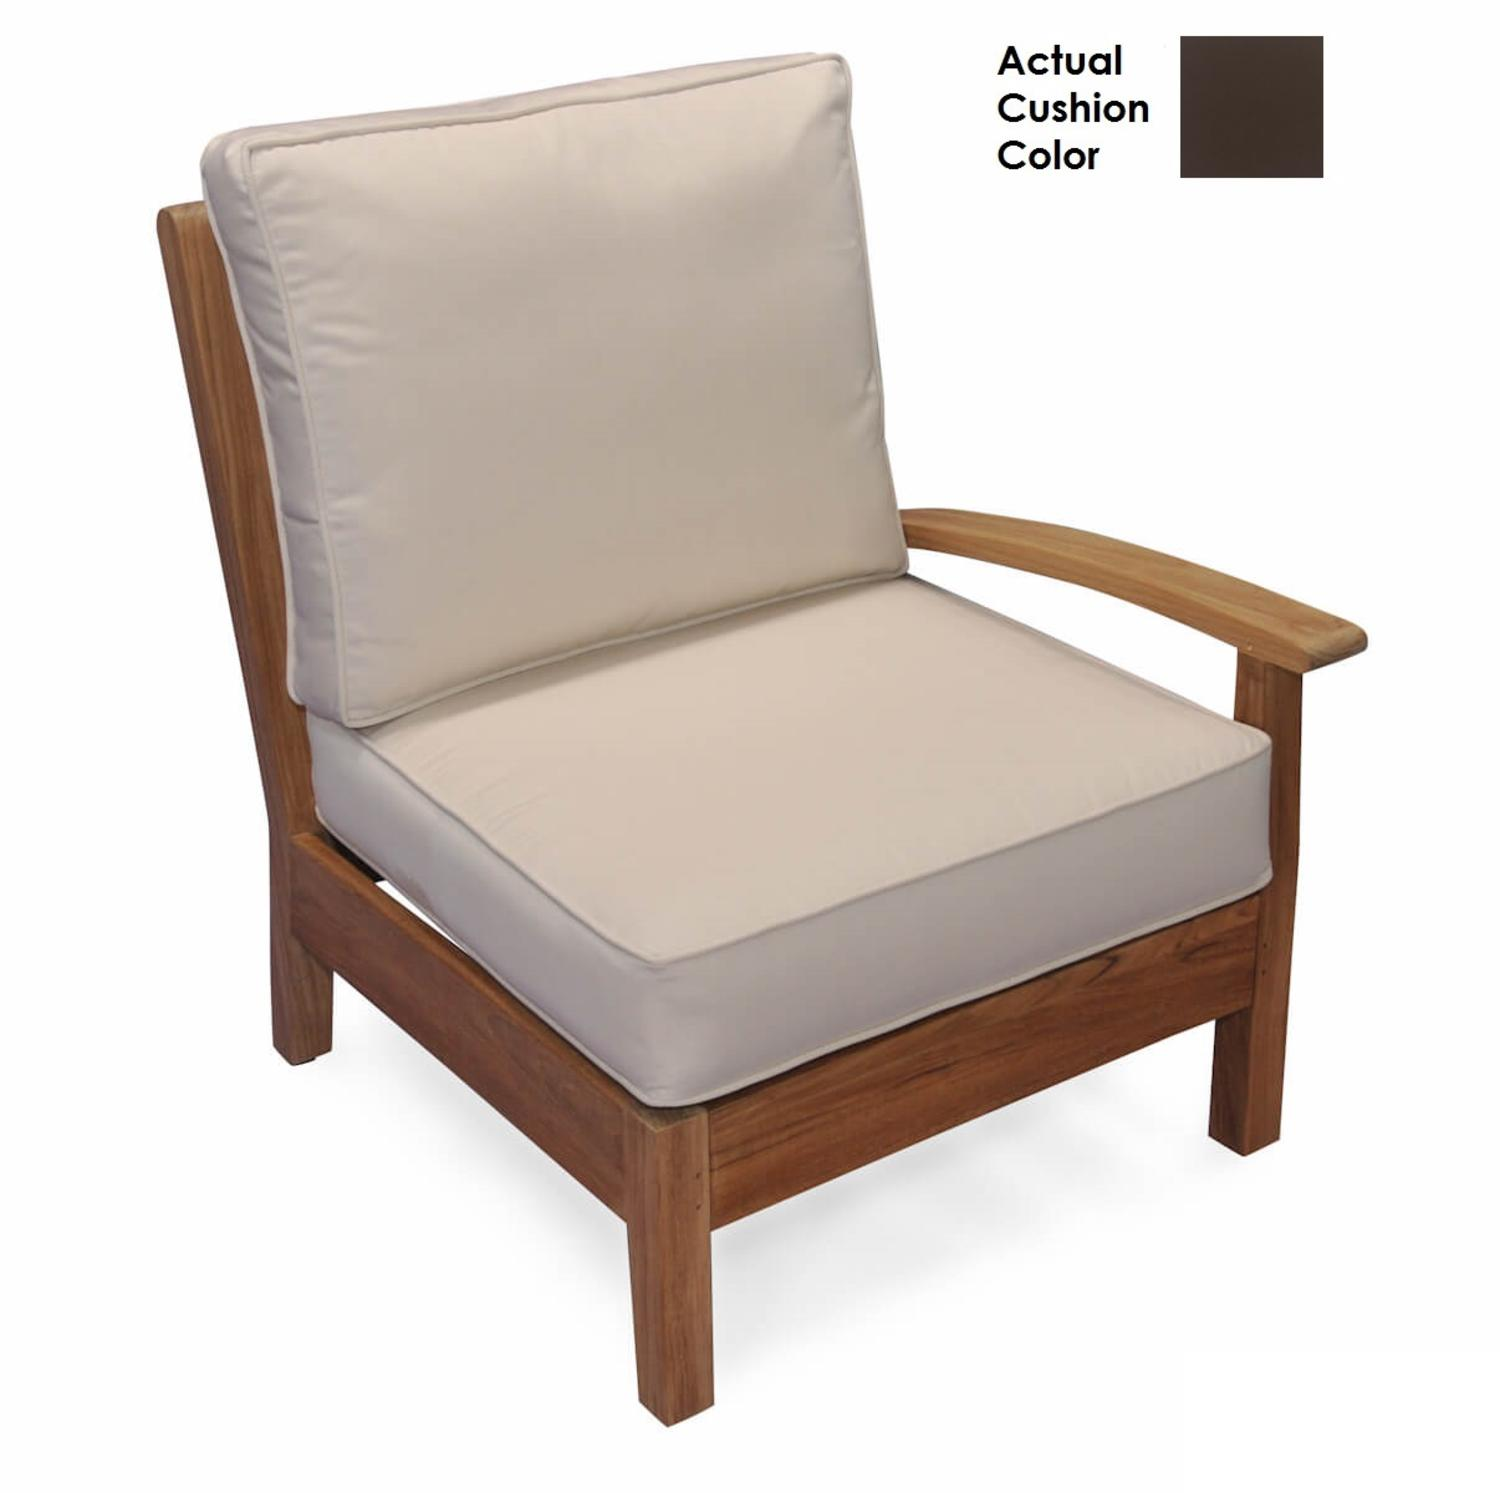 "35"" Natural Teak Sectional Left Arm Outdoor Patio Chair with Walnut Brown Cushions by Eco-Friendly Furnishings"